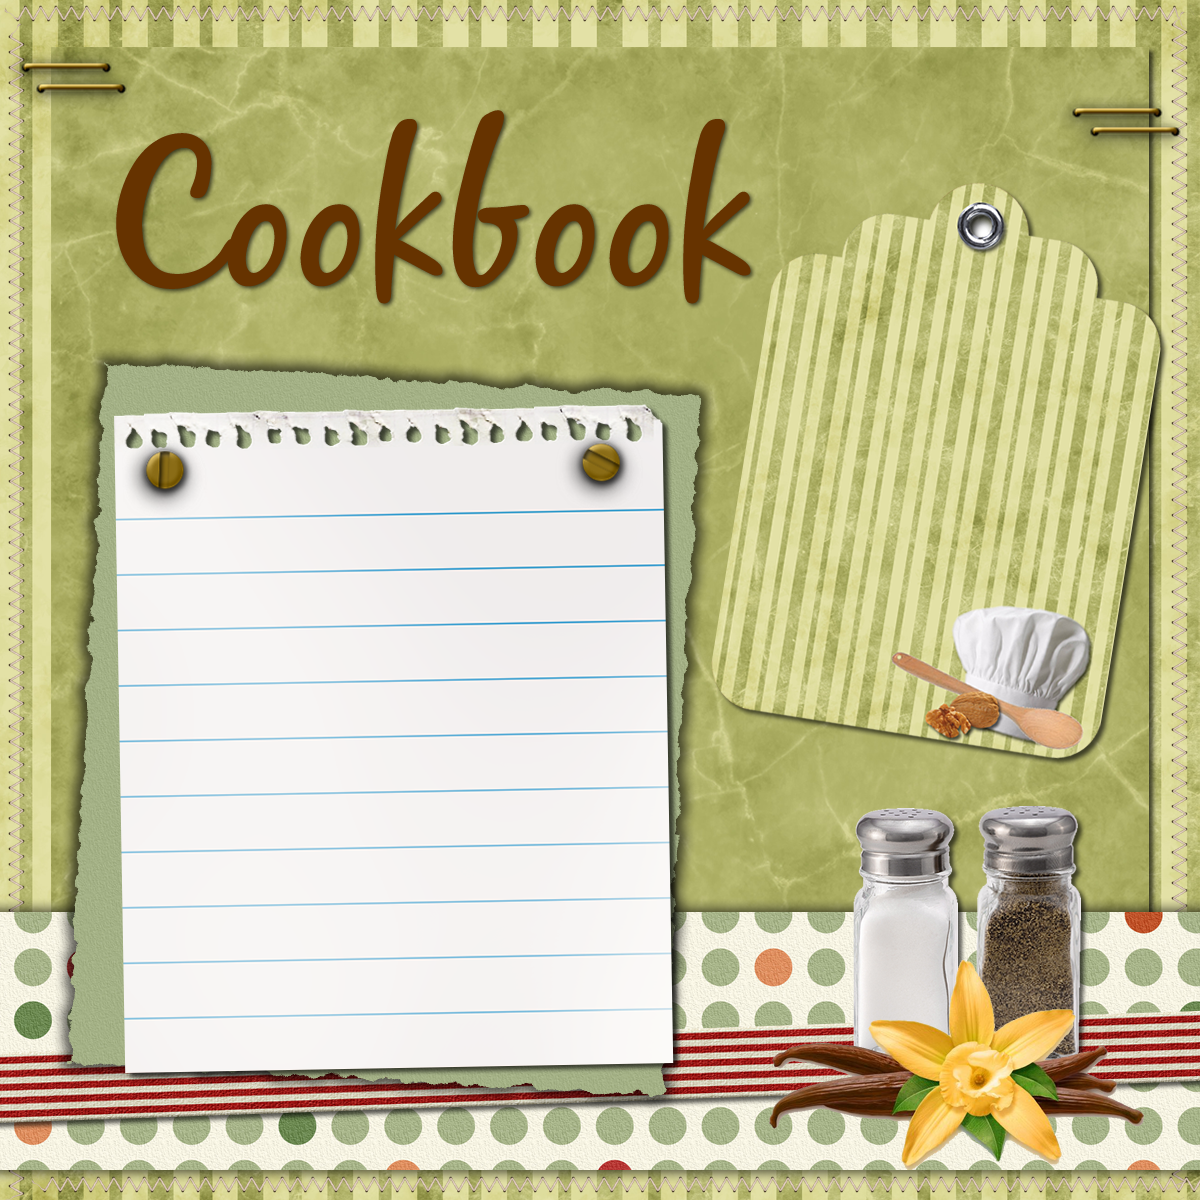 Cookbook+Pre-Made+Sample+Cookbook+Page.png